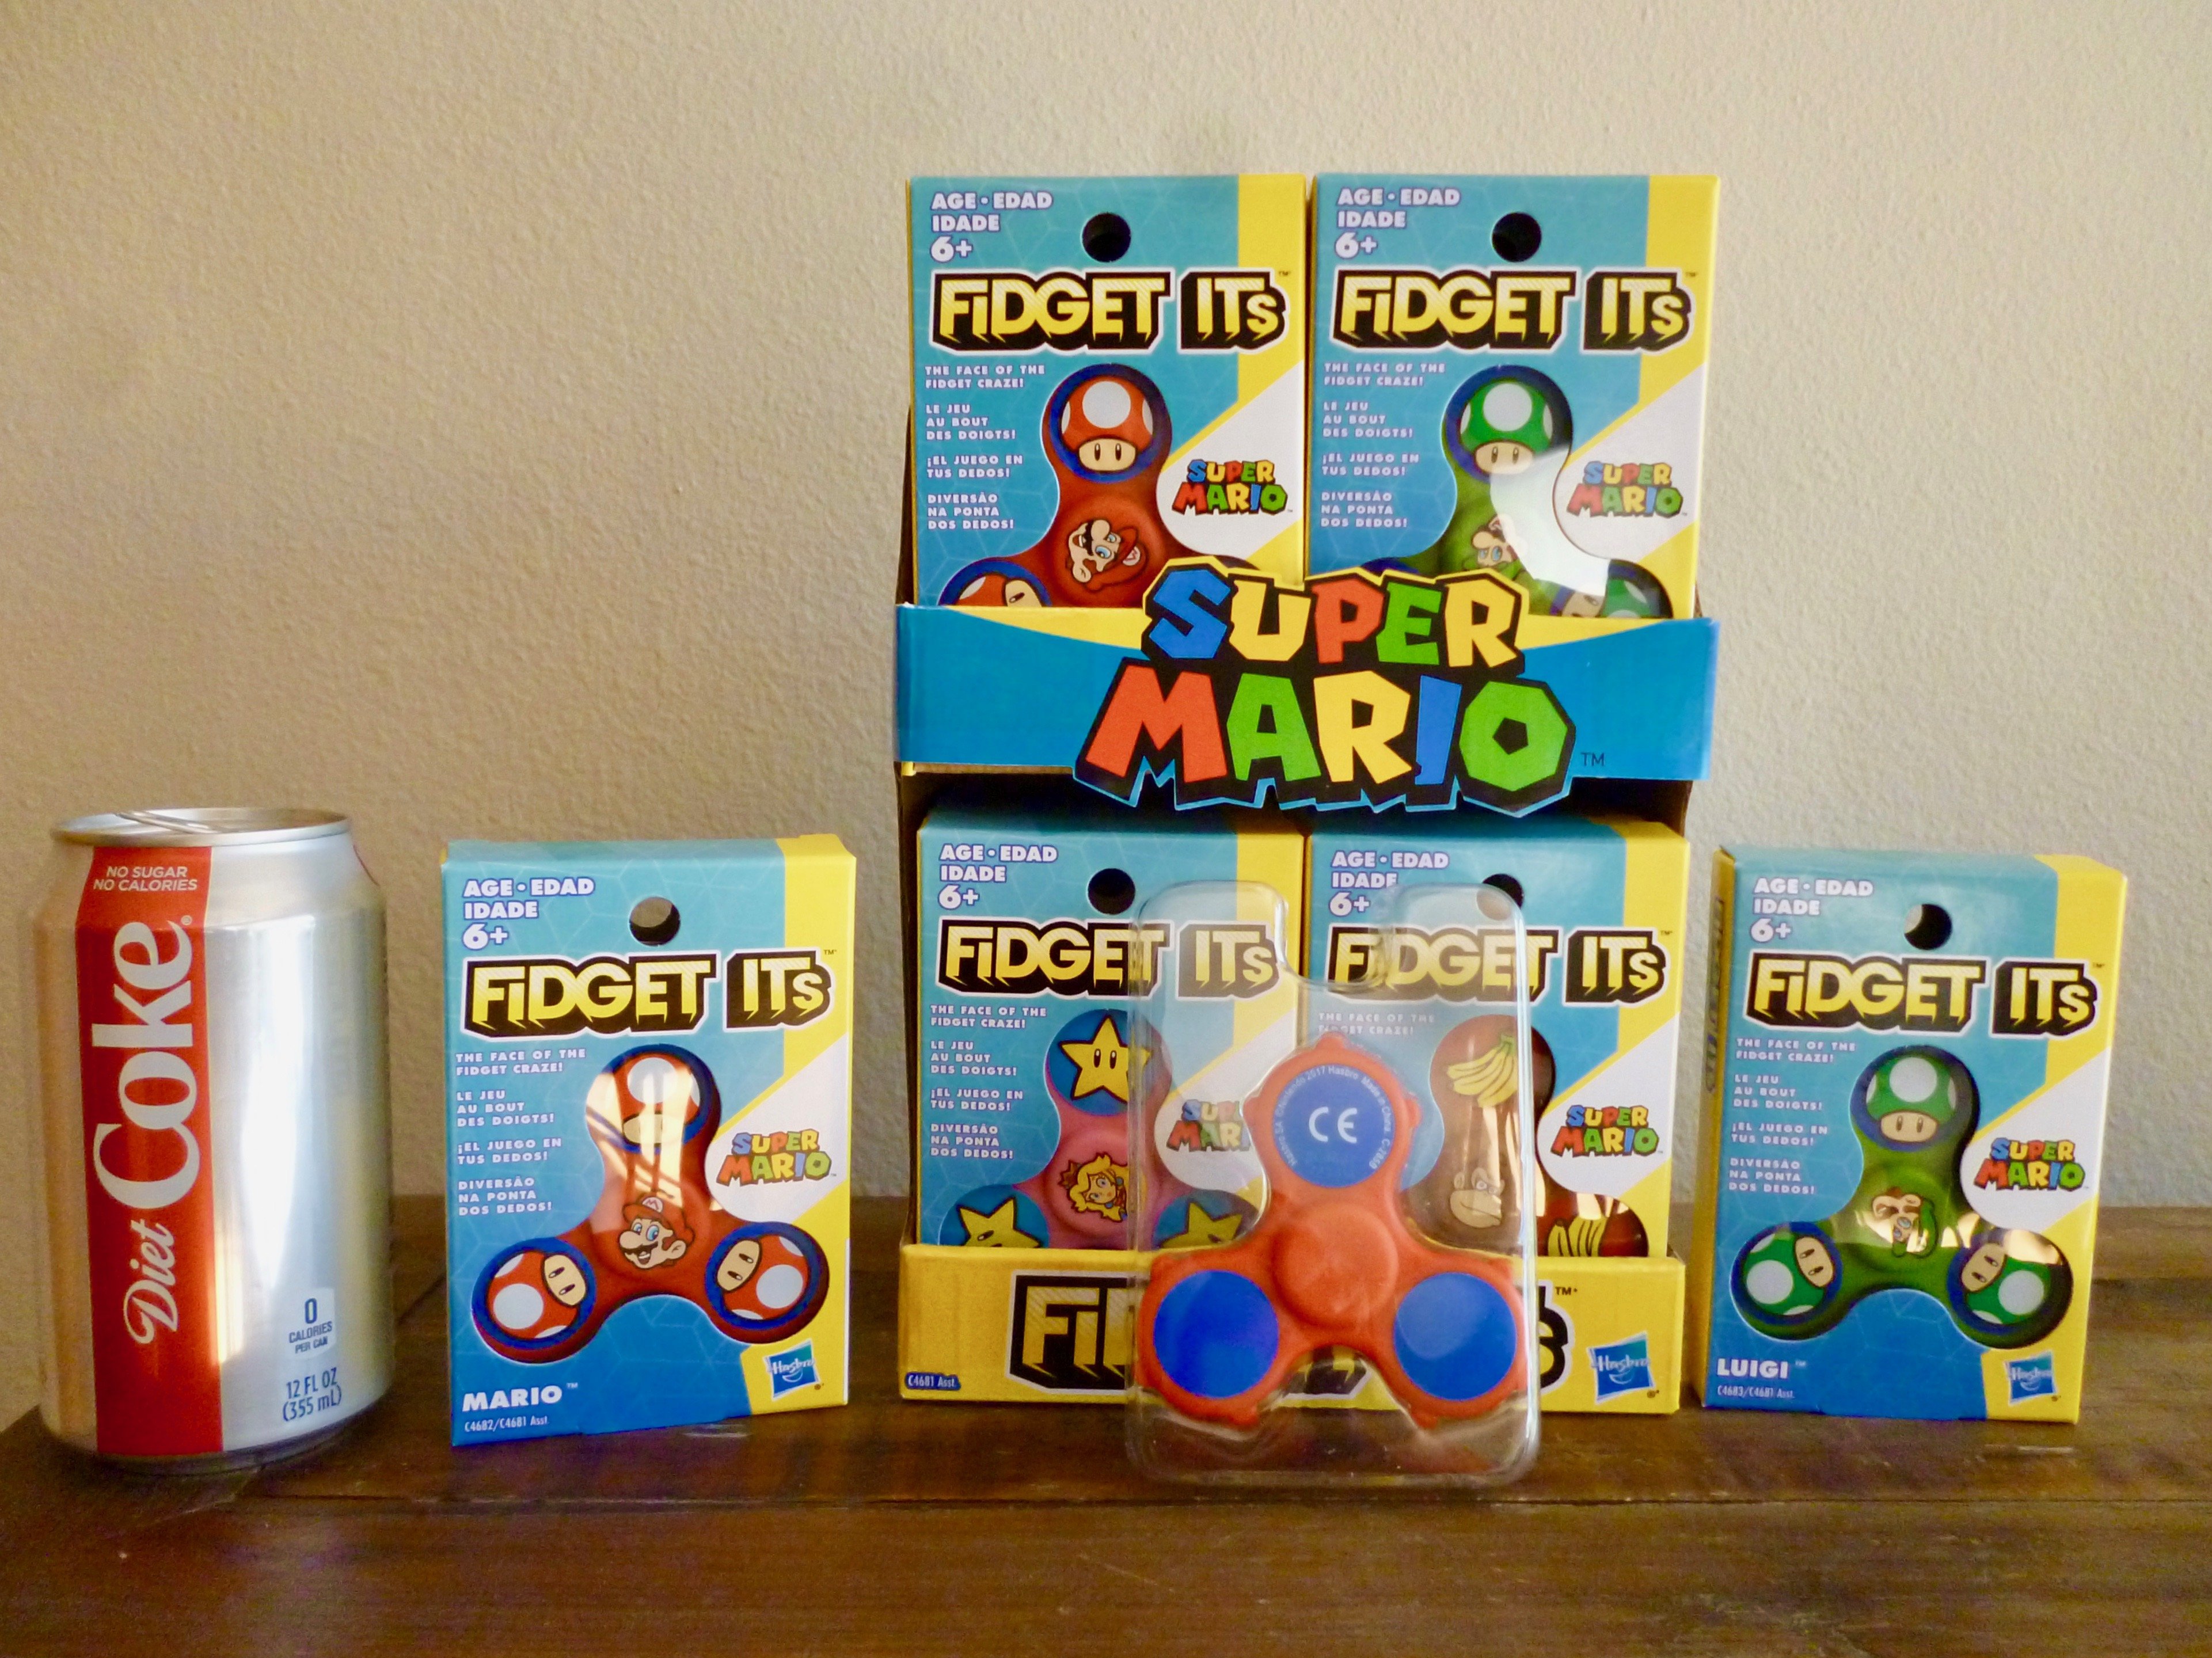 34795 - Super Mario Inventory From Hasbro Europe